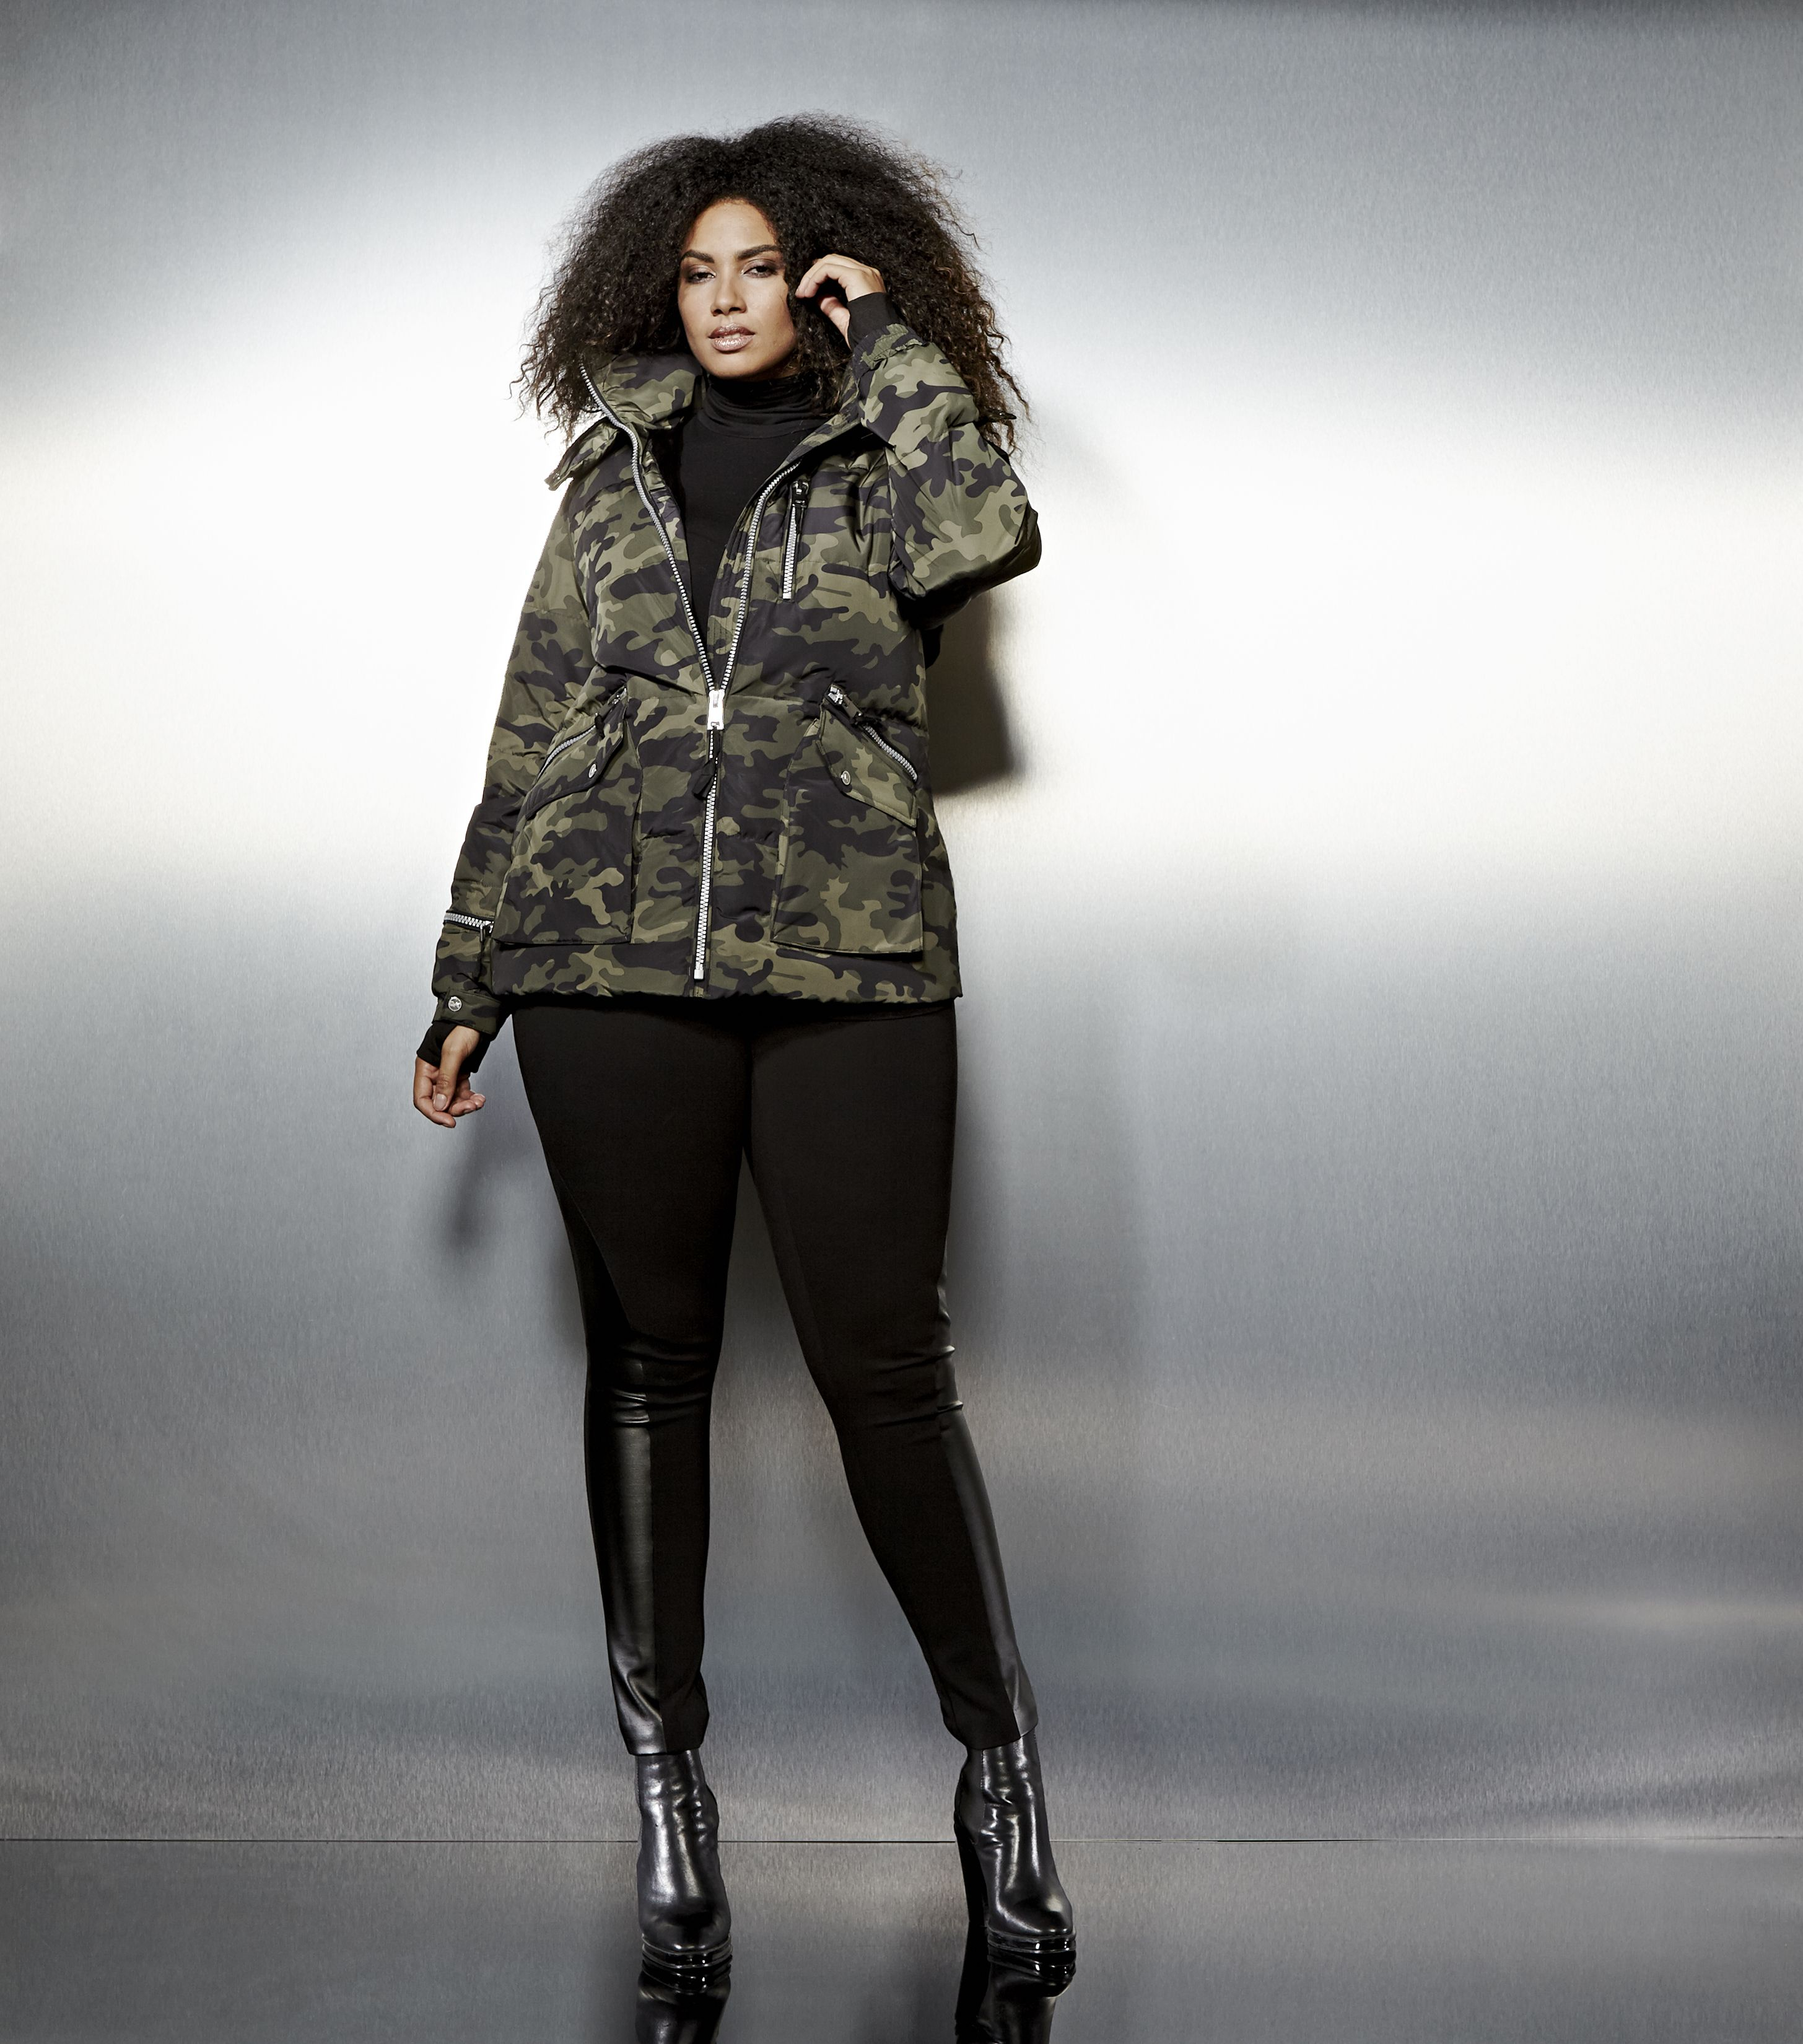 Livik Hooded Cropped Puffer Jacket Plus Size Plus Size Coats Plus Size Outfits [ 3300 x 2911 Pixel ]